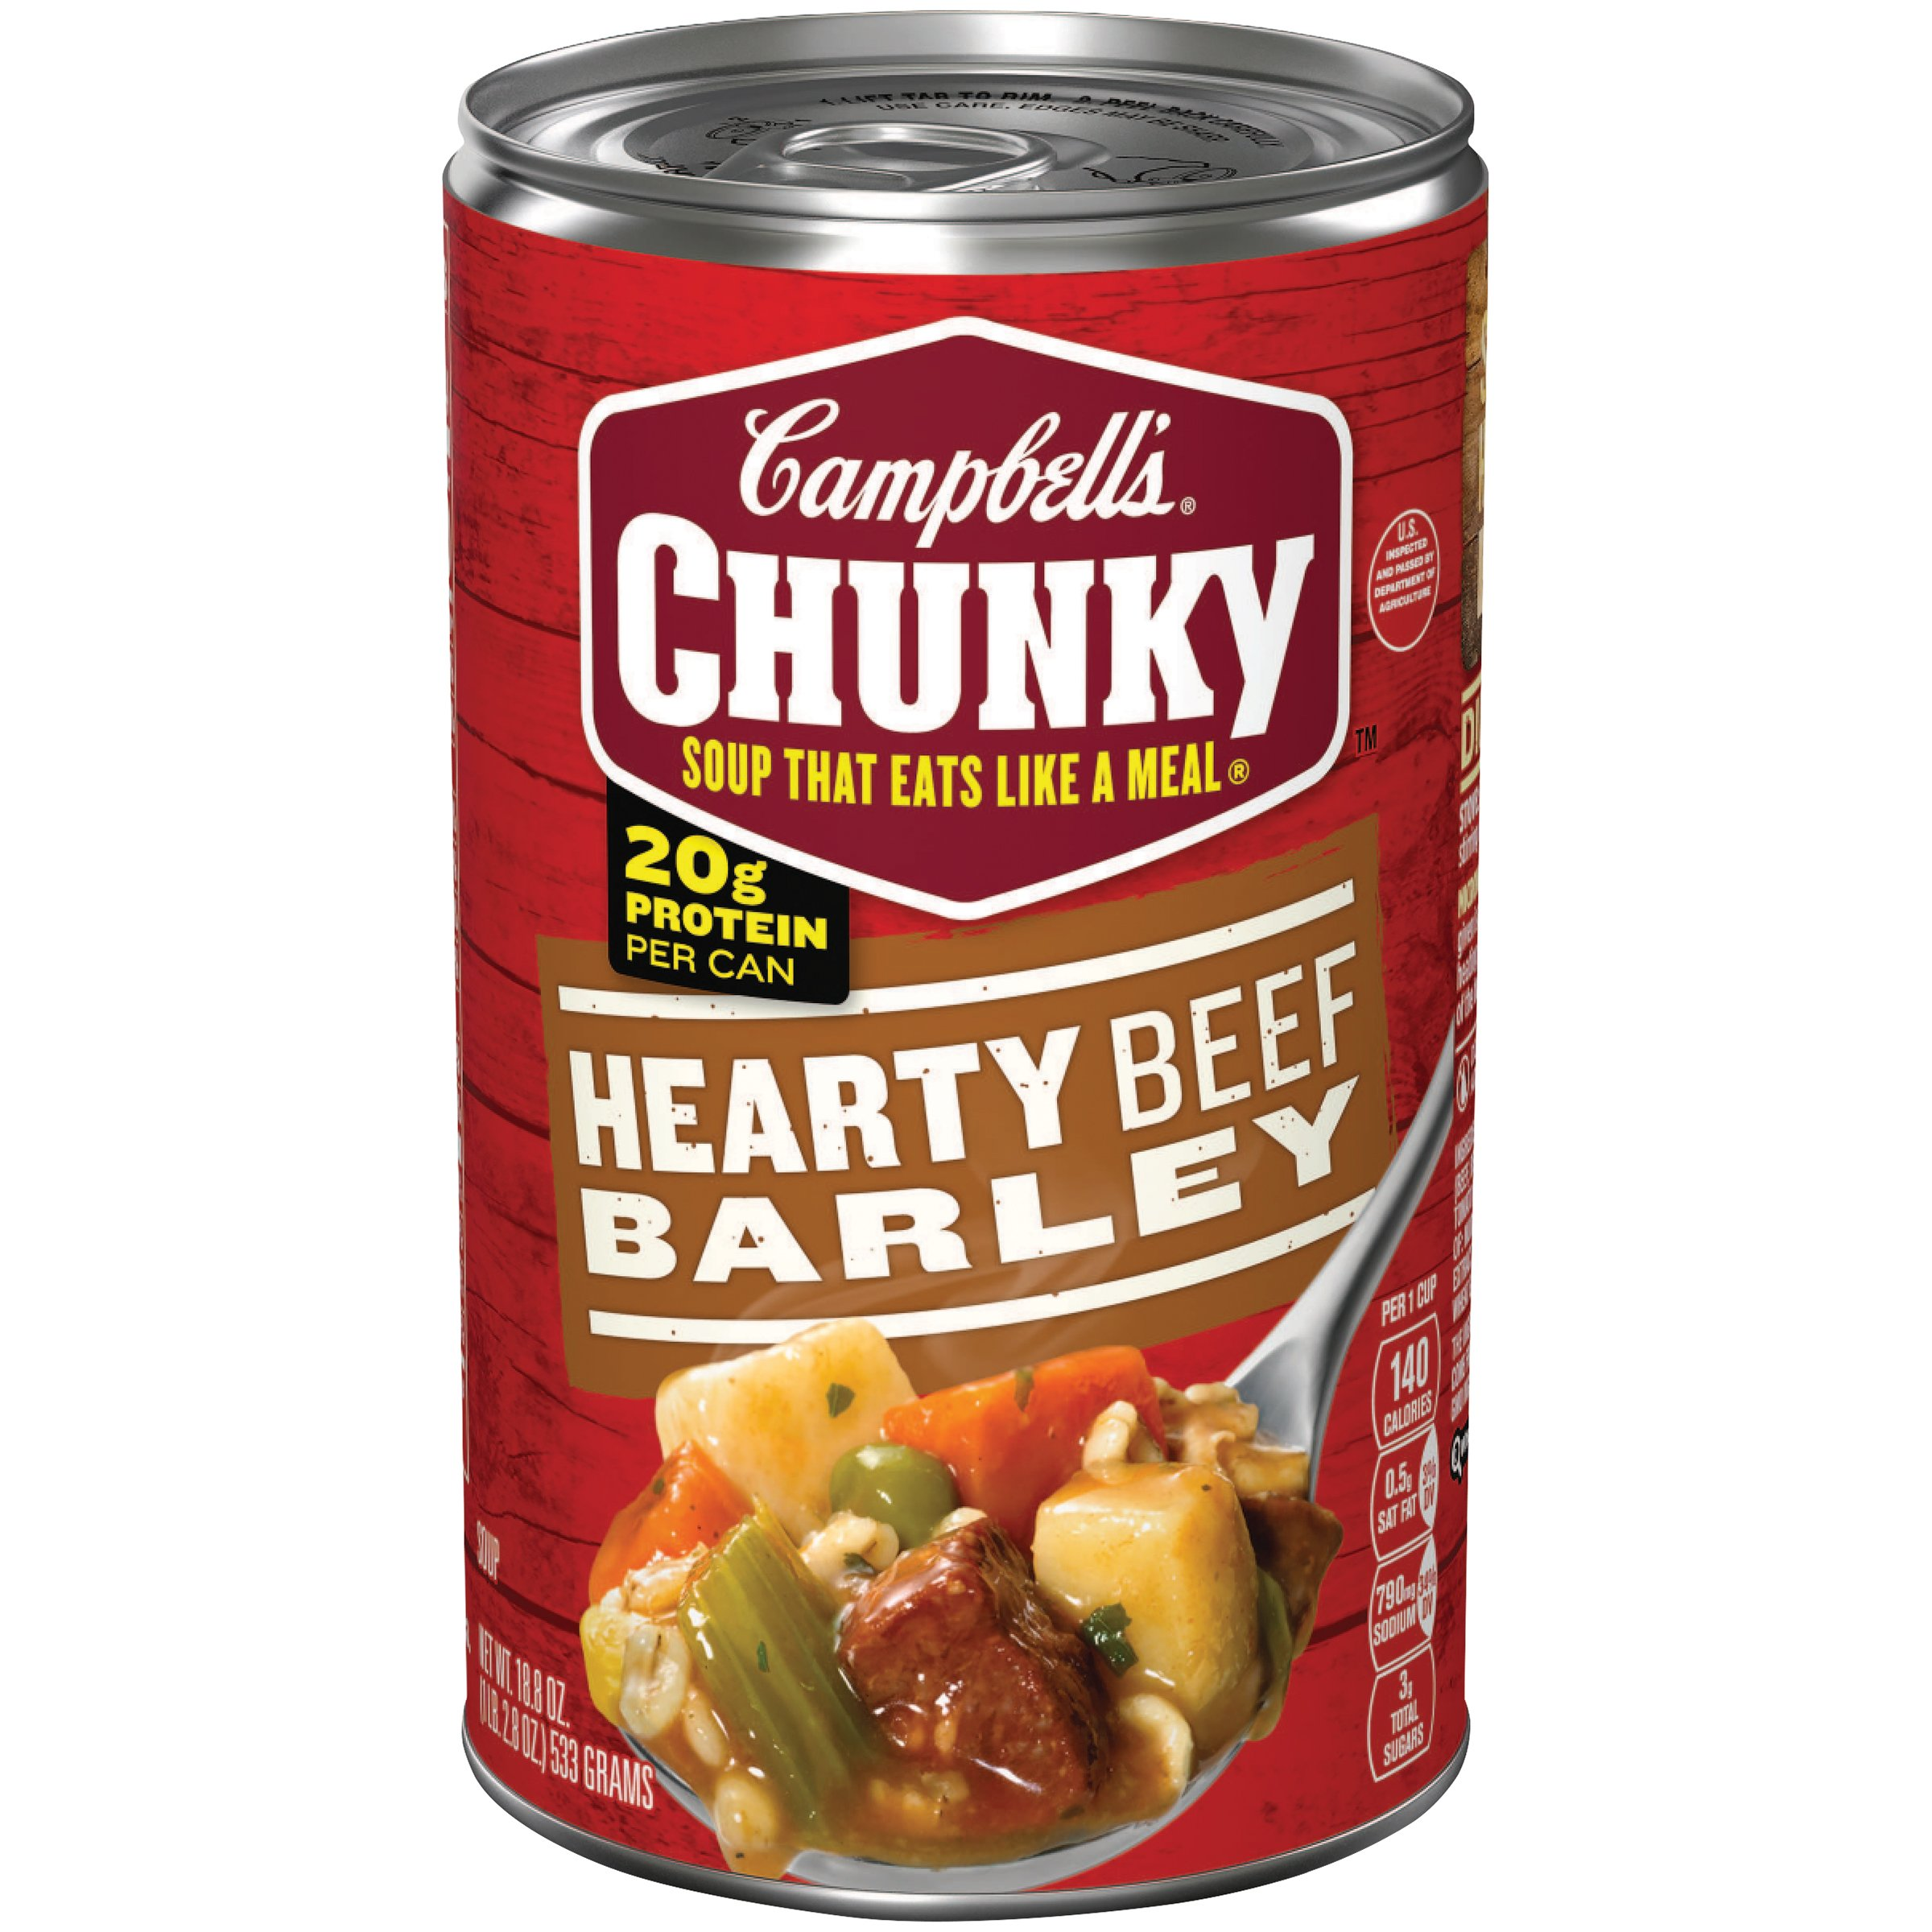 Amazon.com : Campbell's Chunky Soup, Hearty Beef Barley